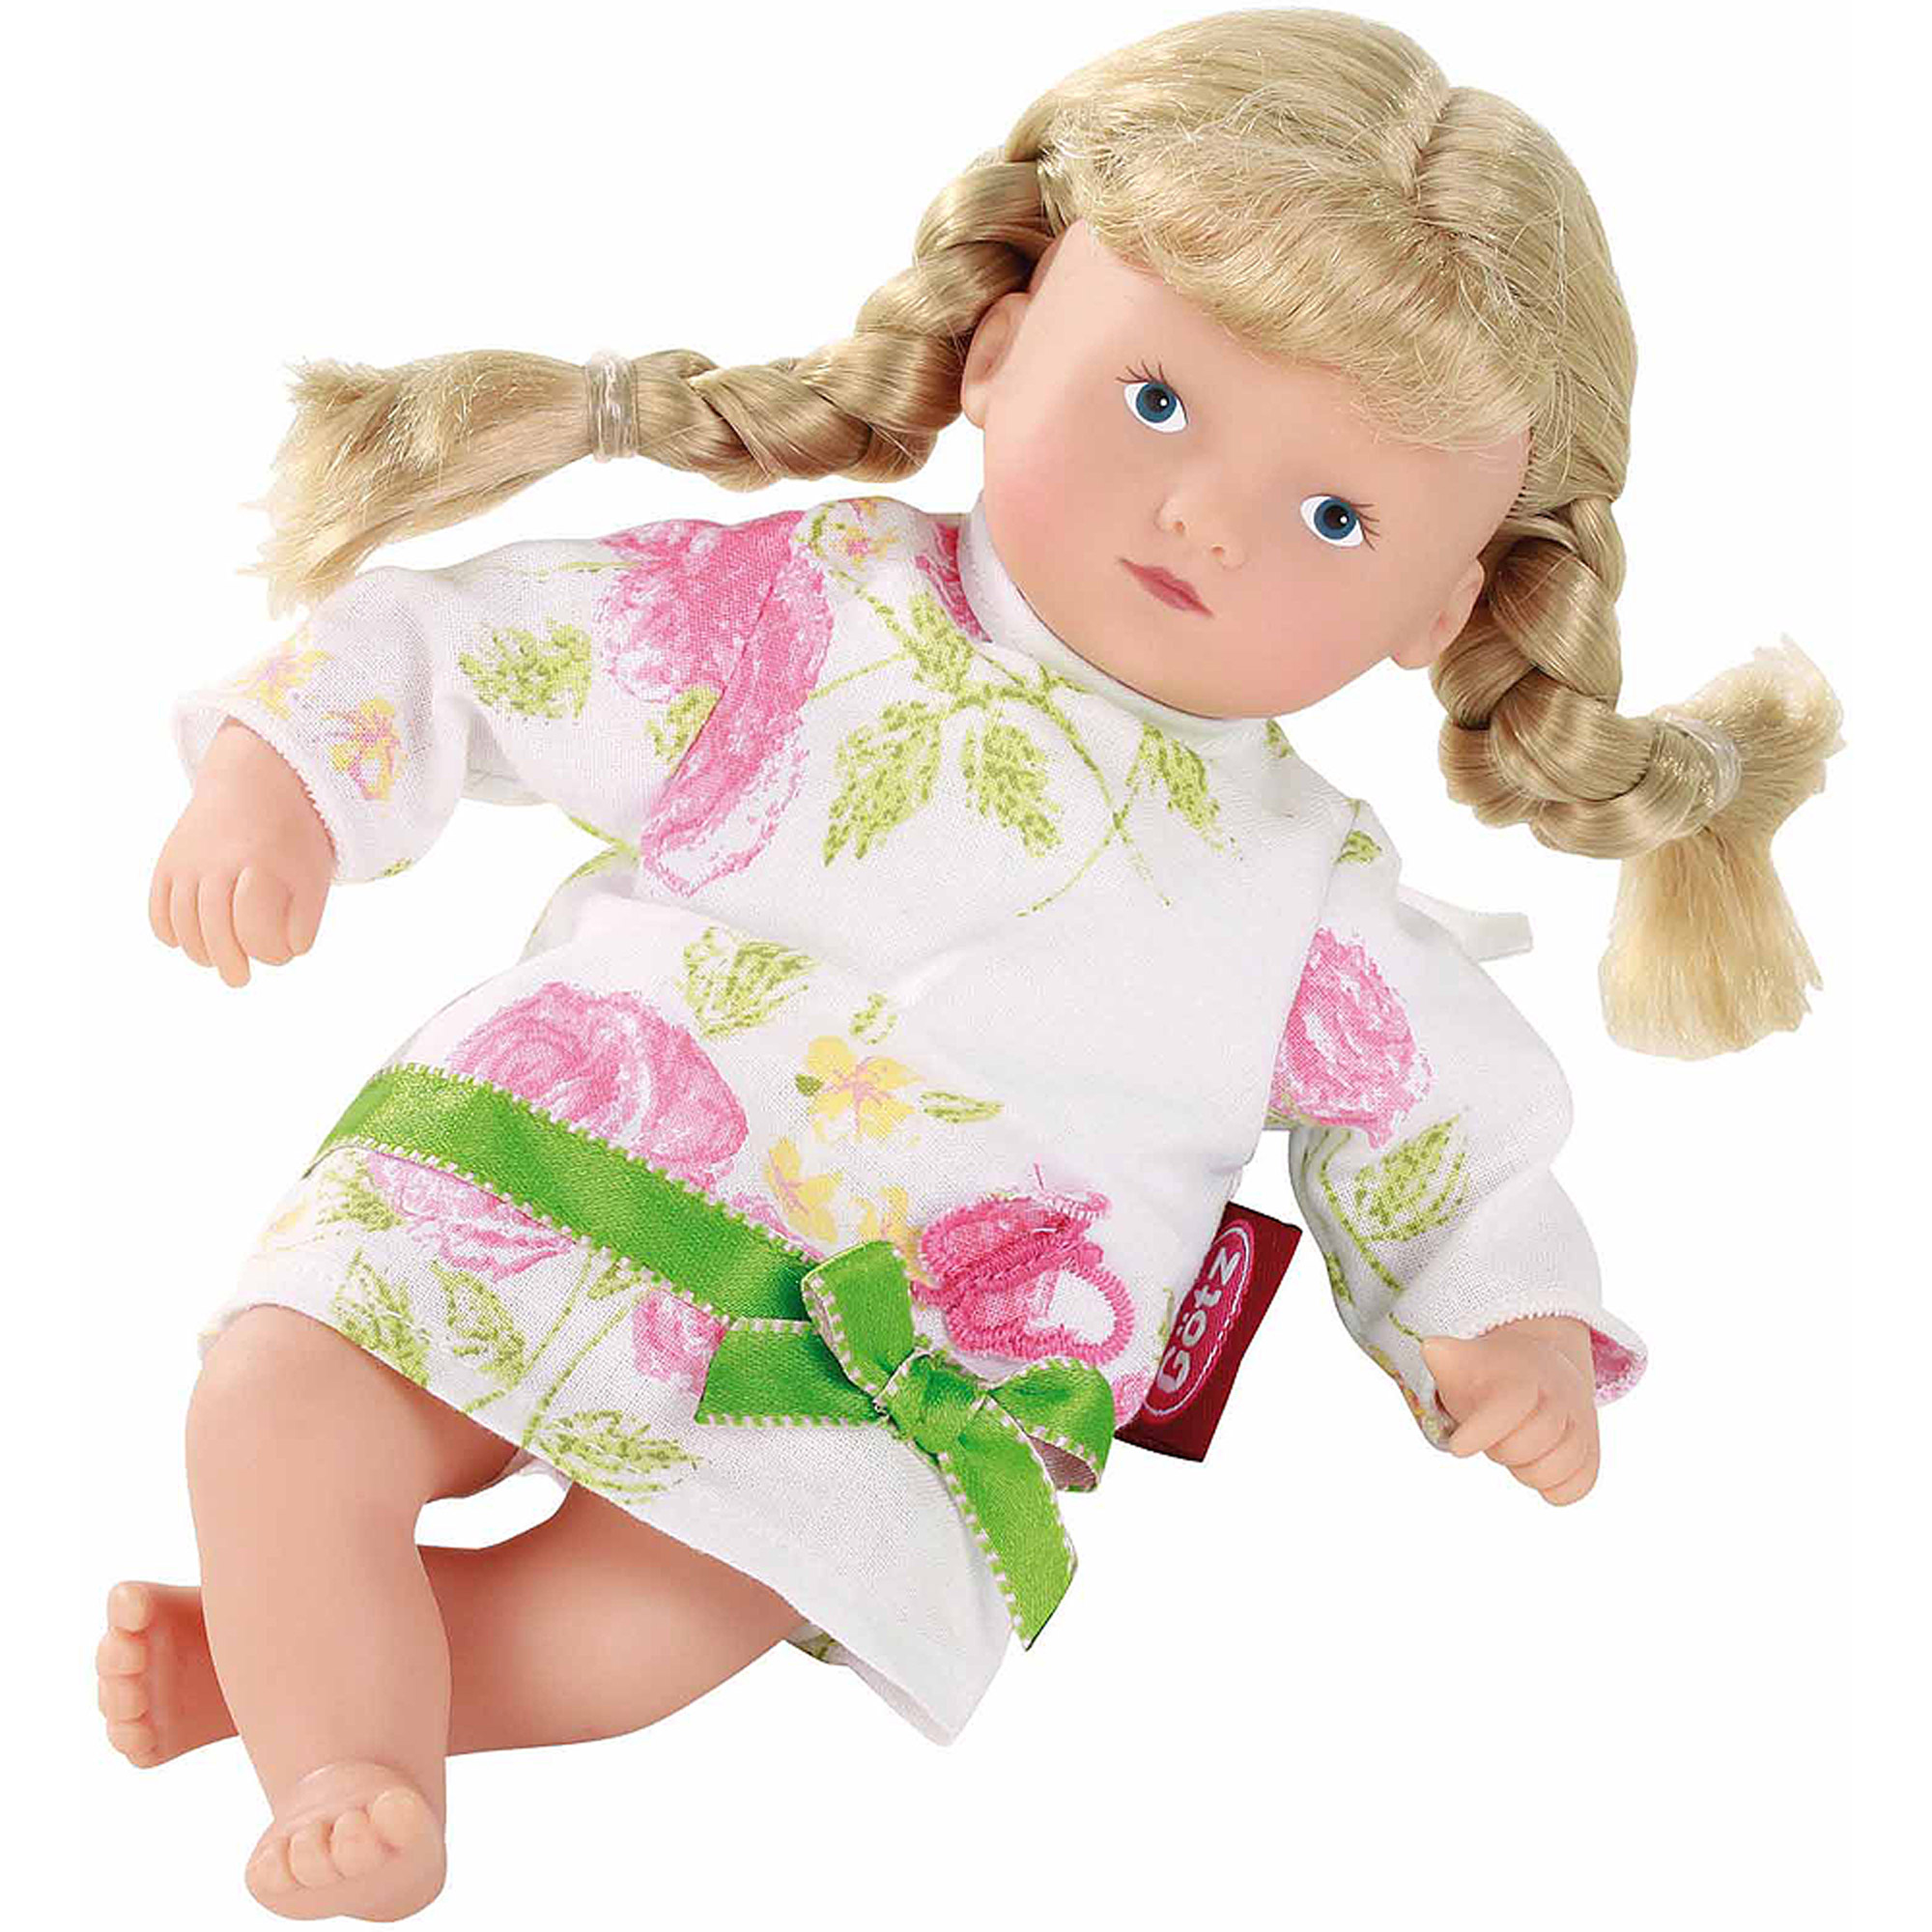 "Gotz Mini Muffin 8"" Doll, Blue Eyes and Blonde Pigtails"